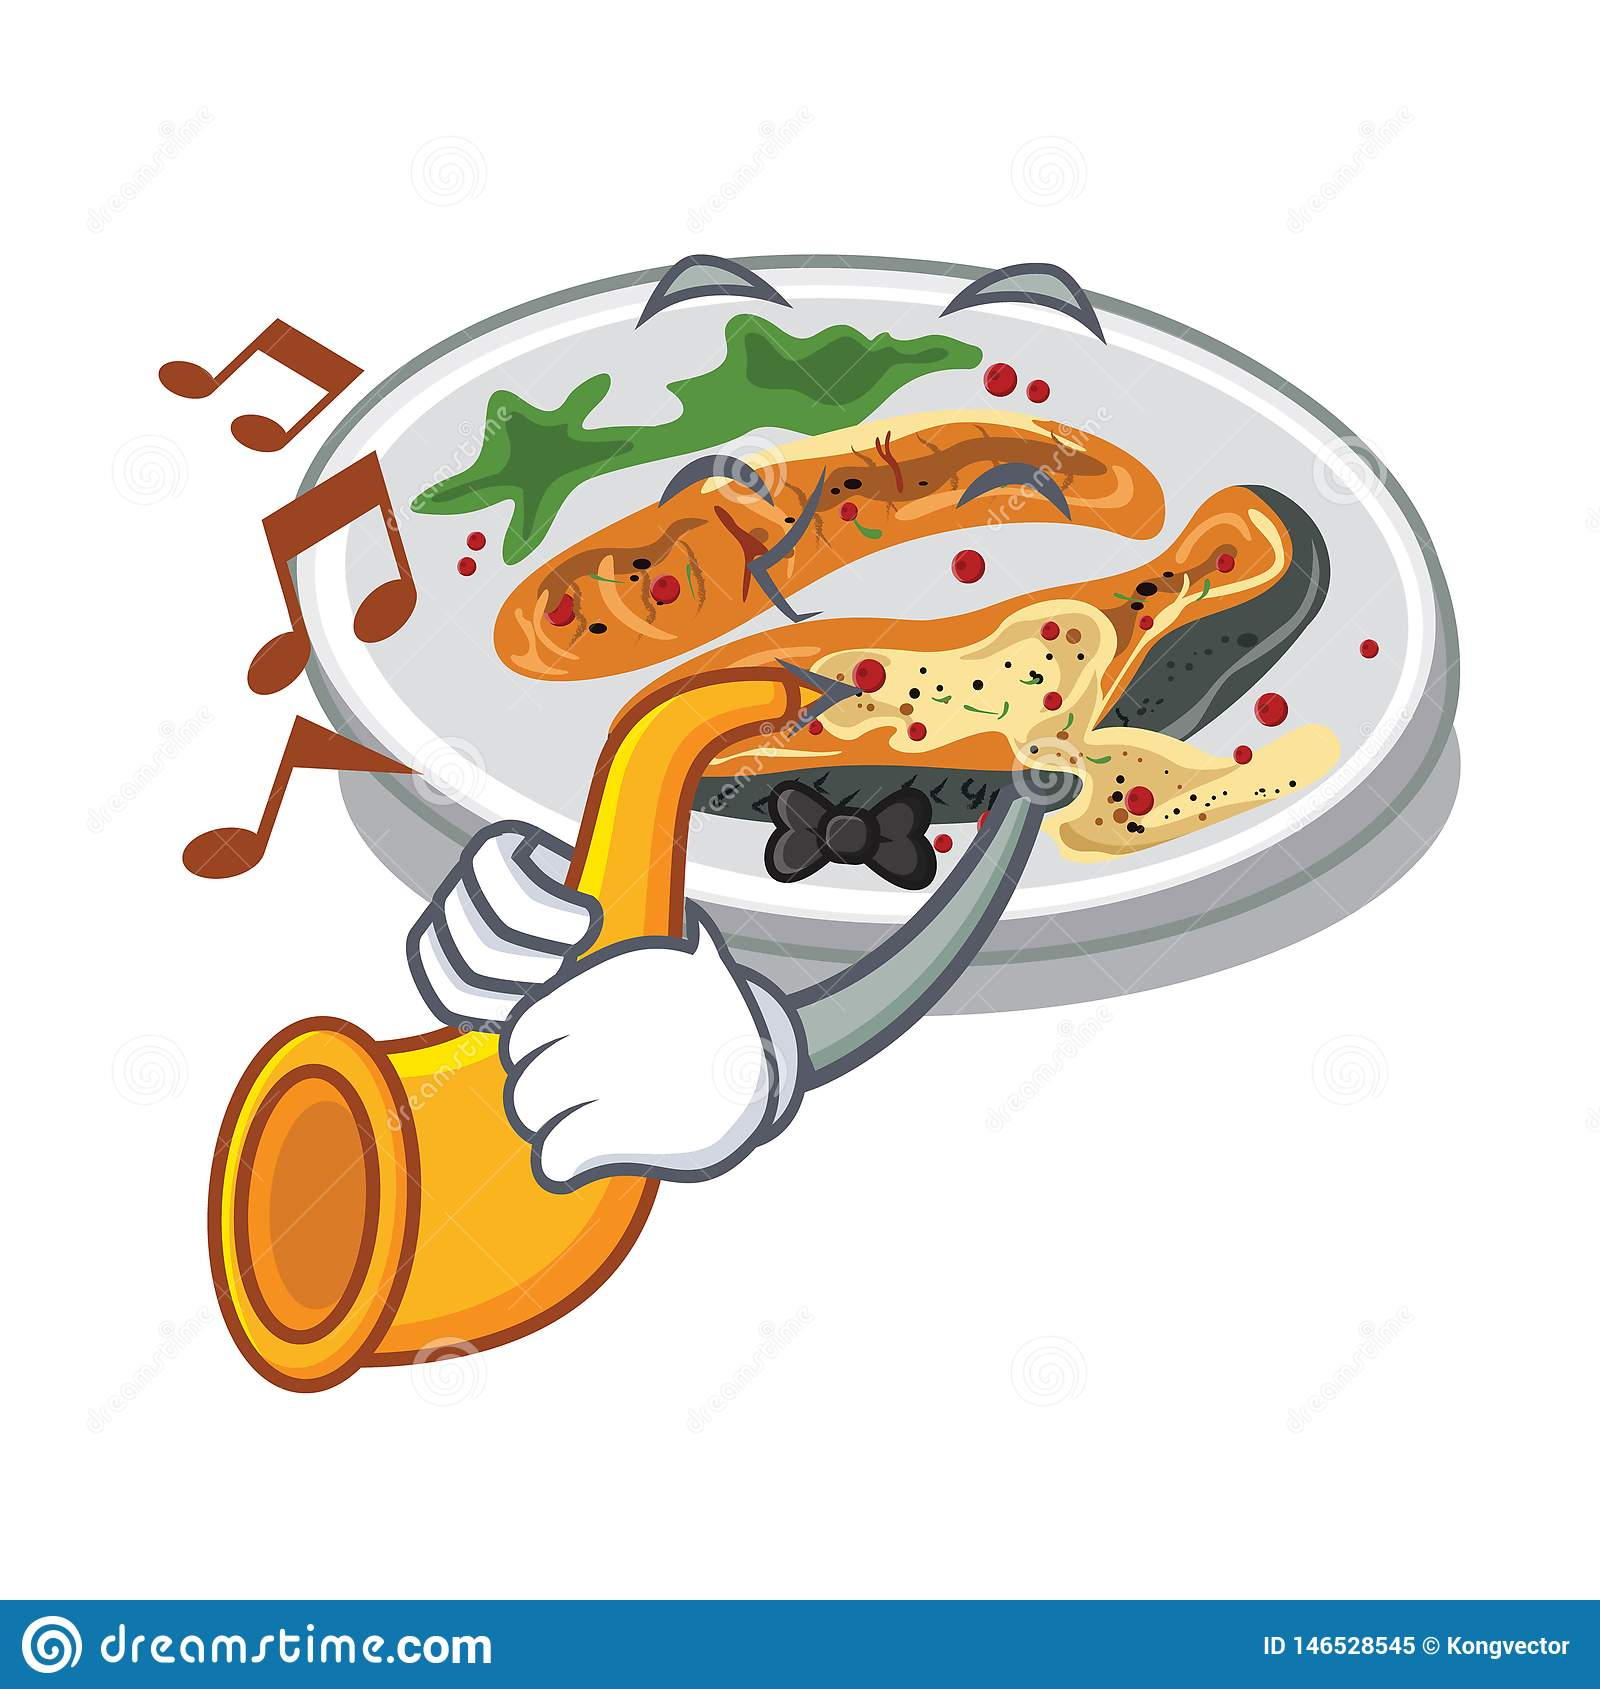 With trumpet grilled salmon served on cartoon board